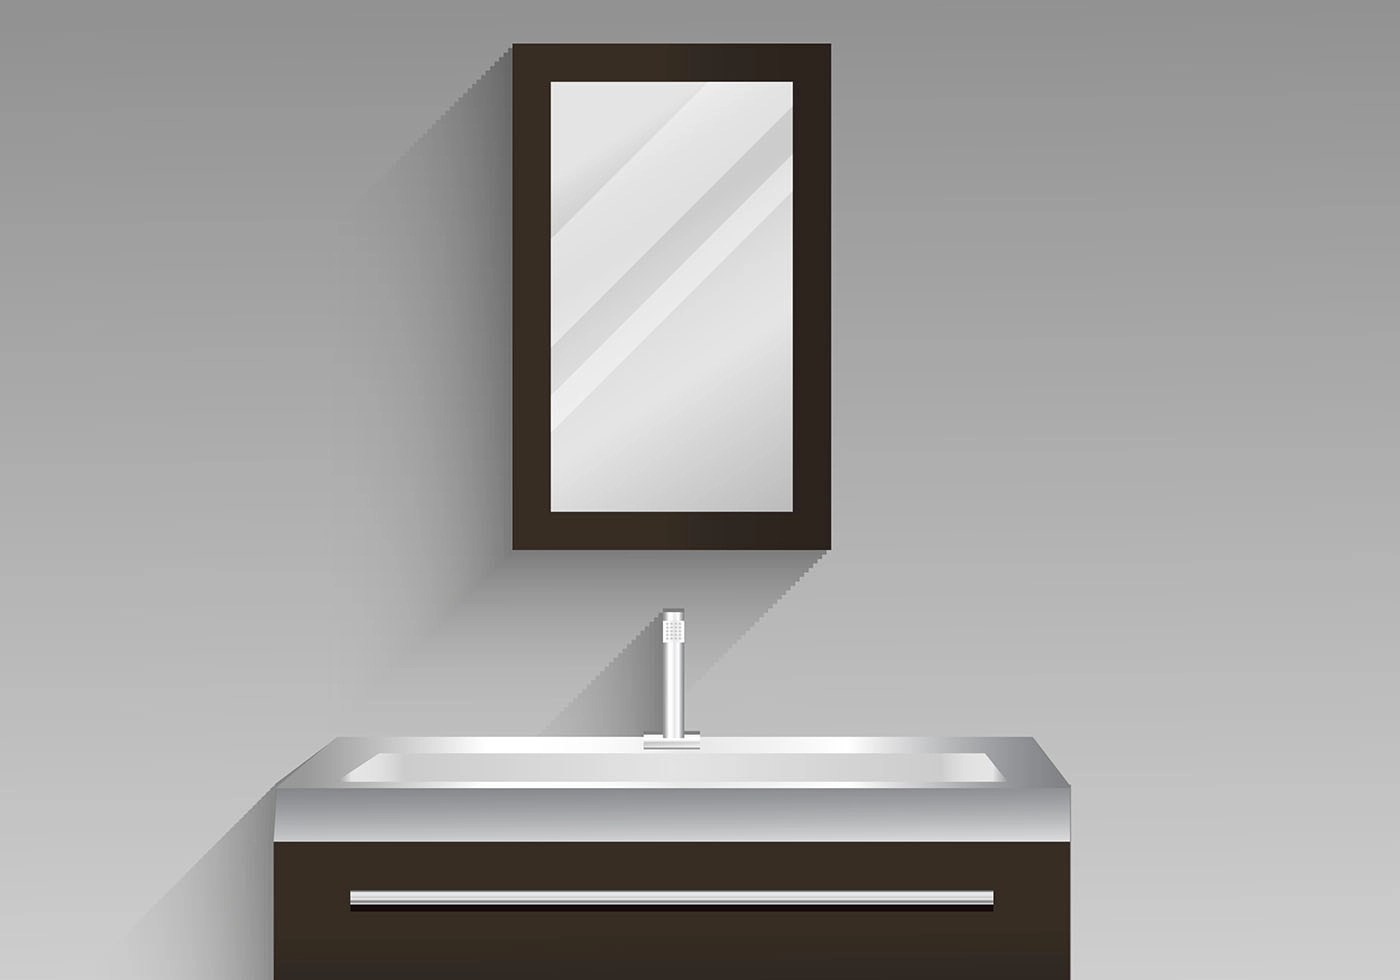 Wc Symbol Bathroom Cabinet Vector Design Illustration - Download